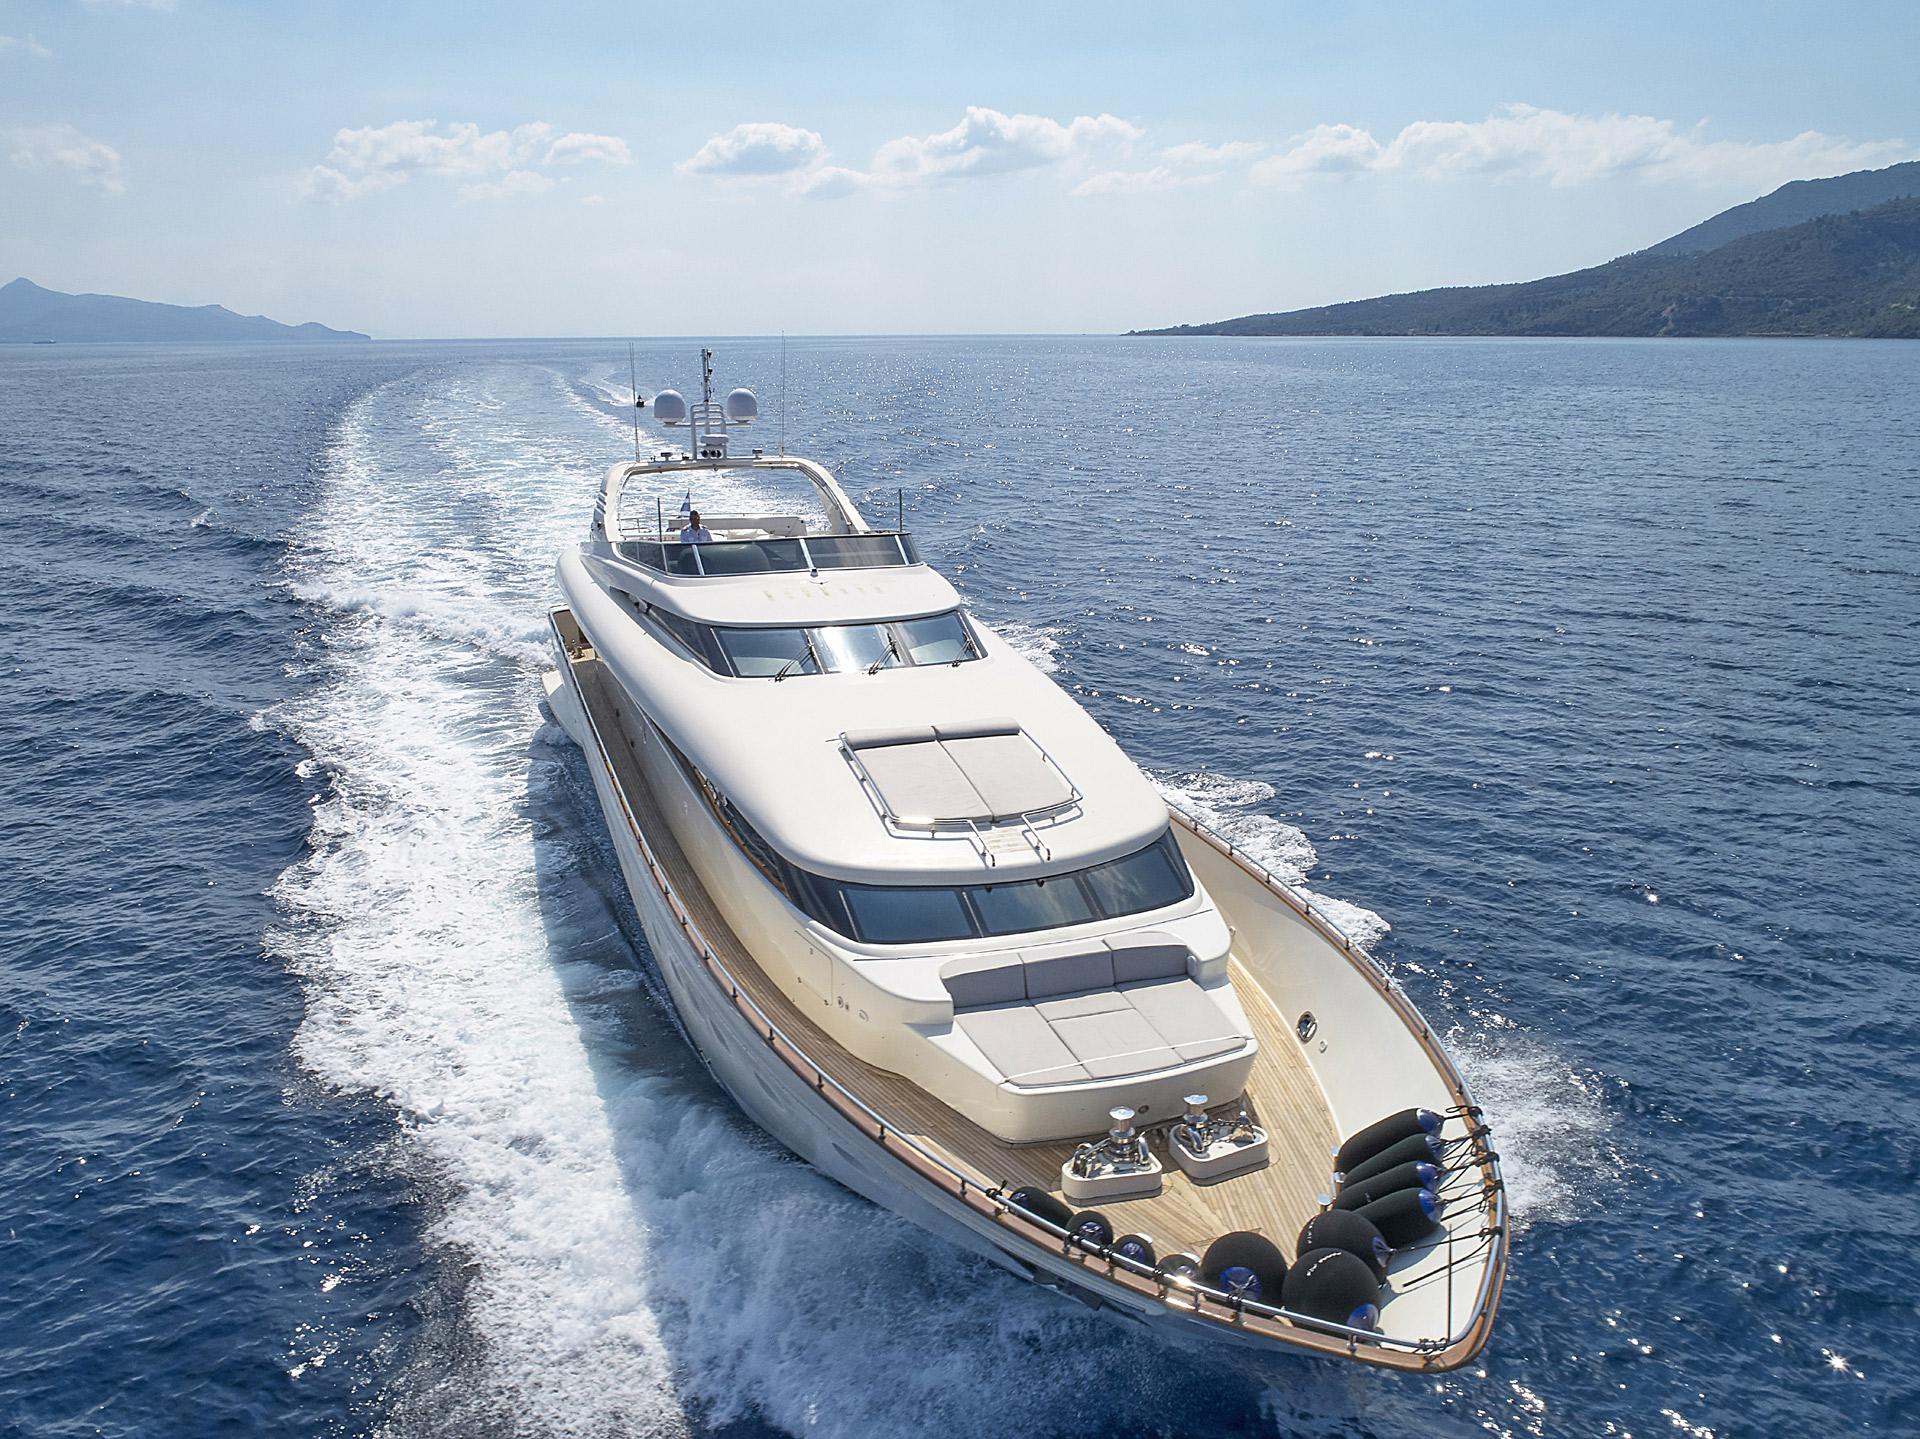 MAMMA-MIA-yacht-for-sale-for-charter-vbs-01.jpg